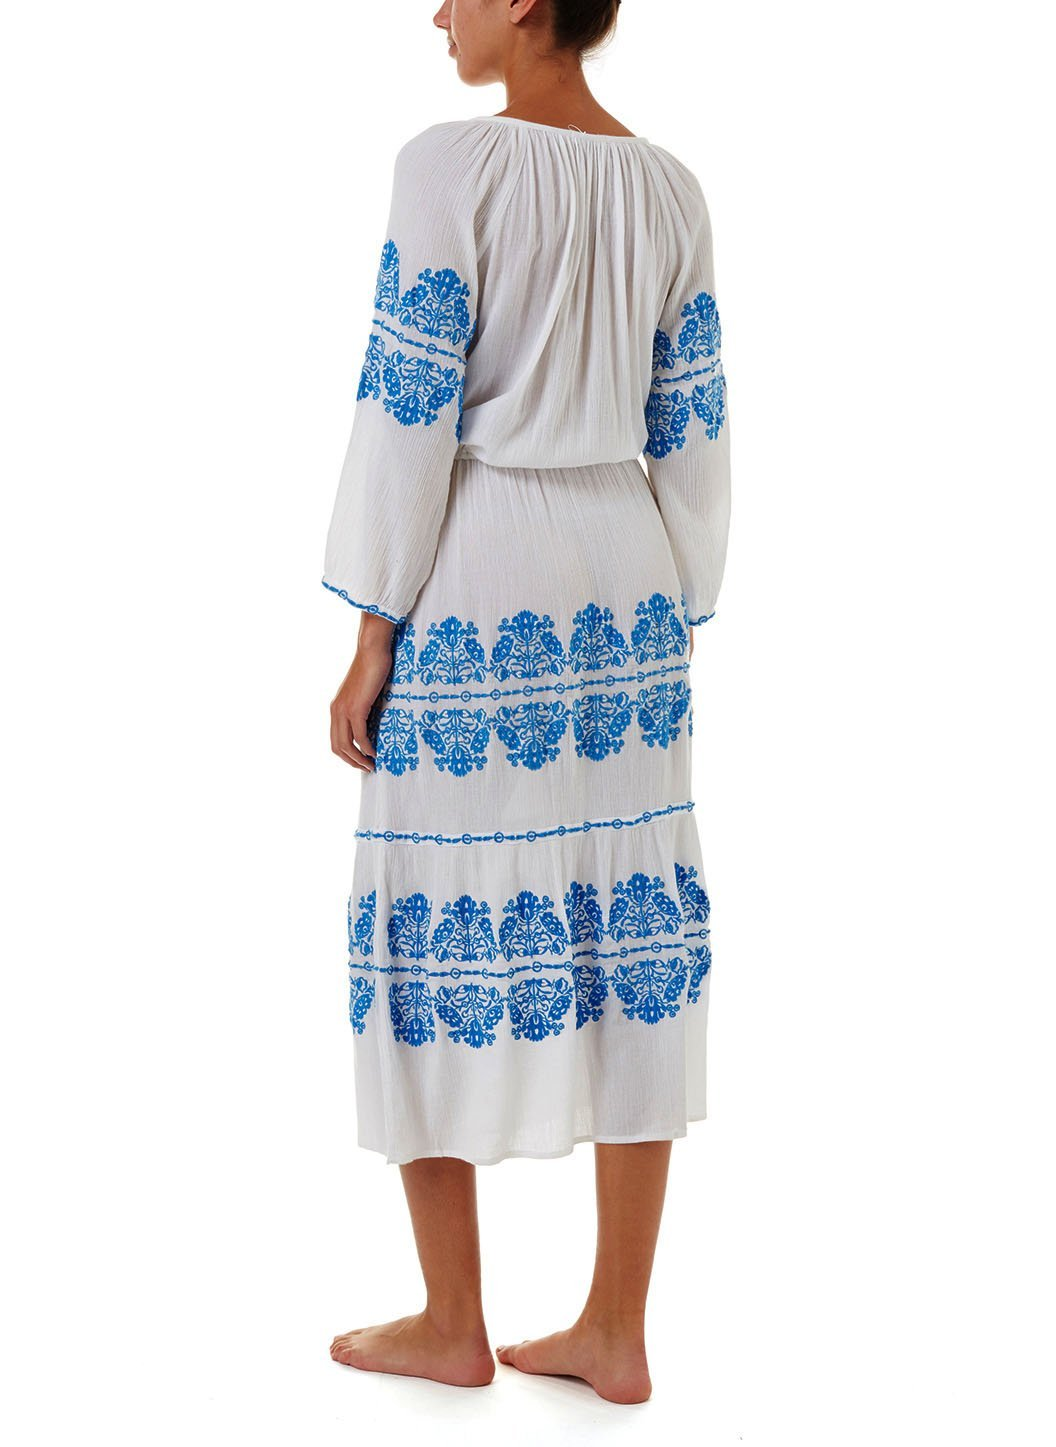 lillie white blue embroidered long sleeve belted midi dress 2019 B